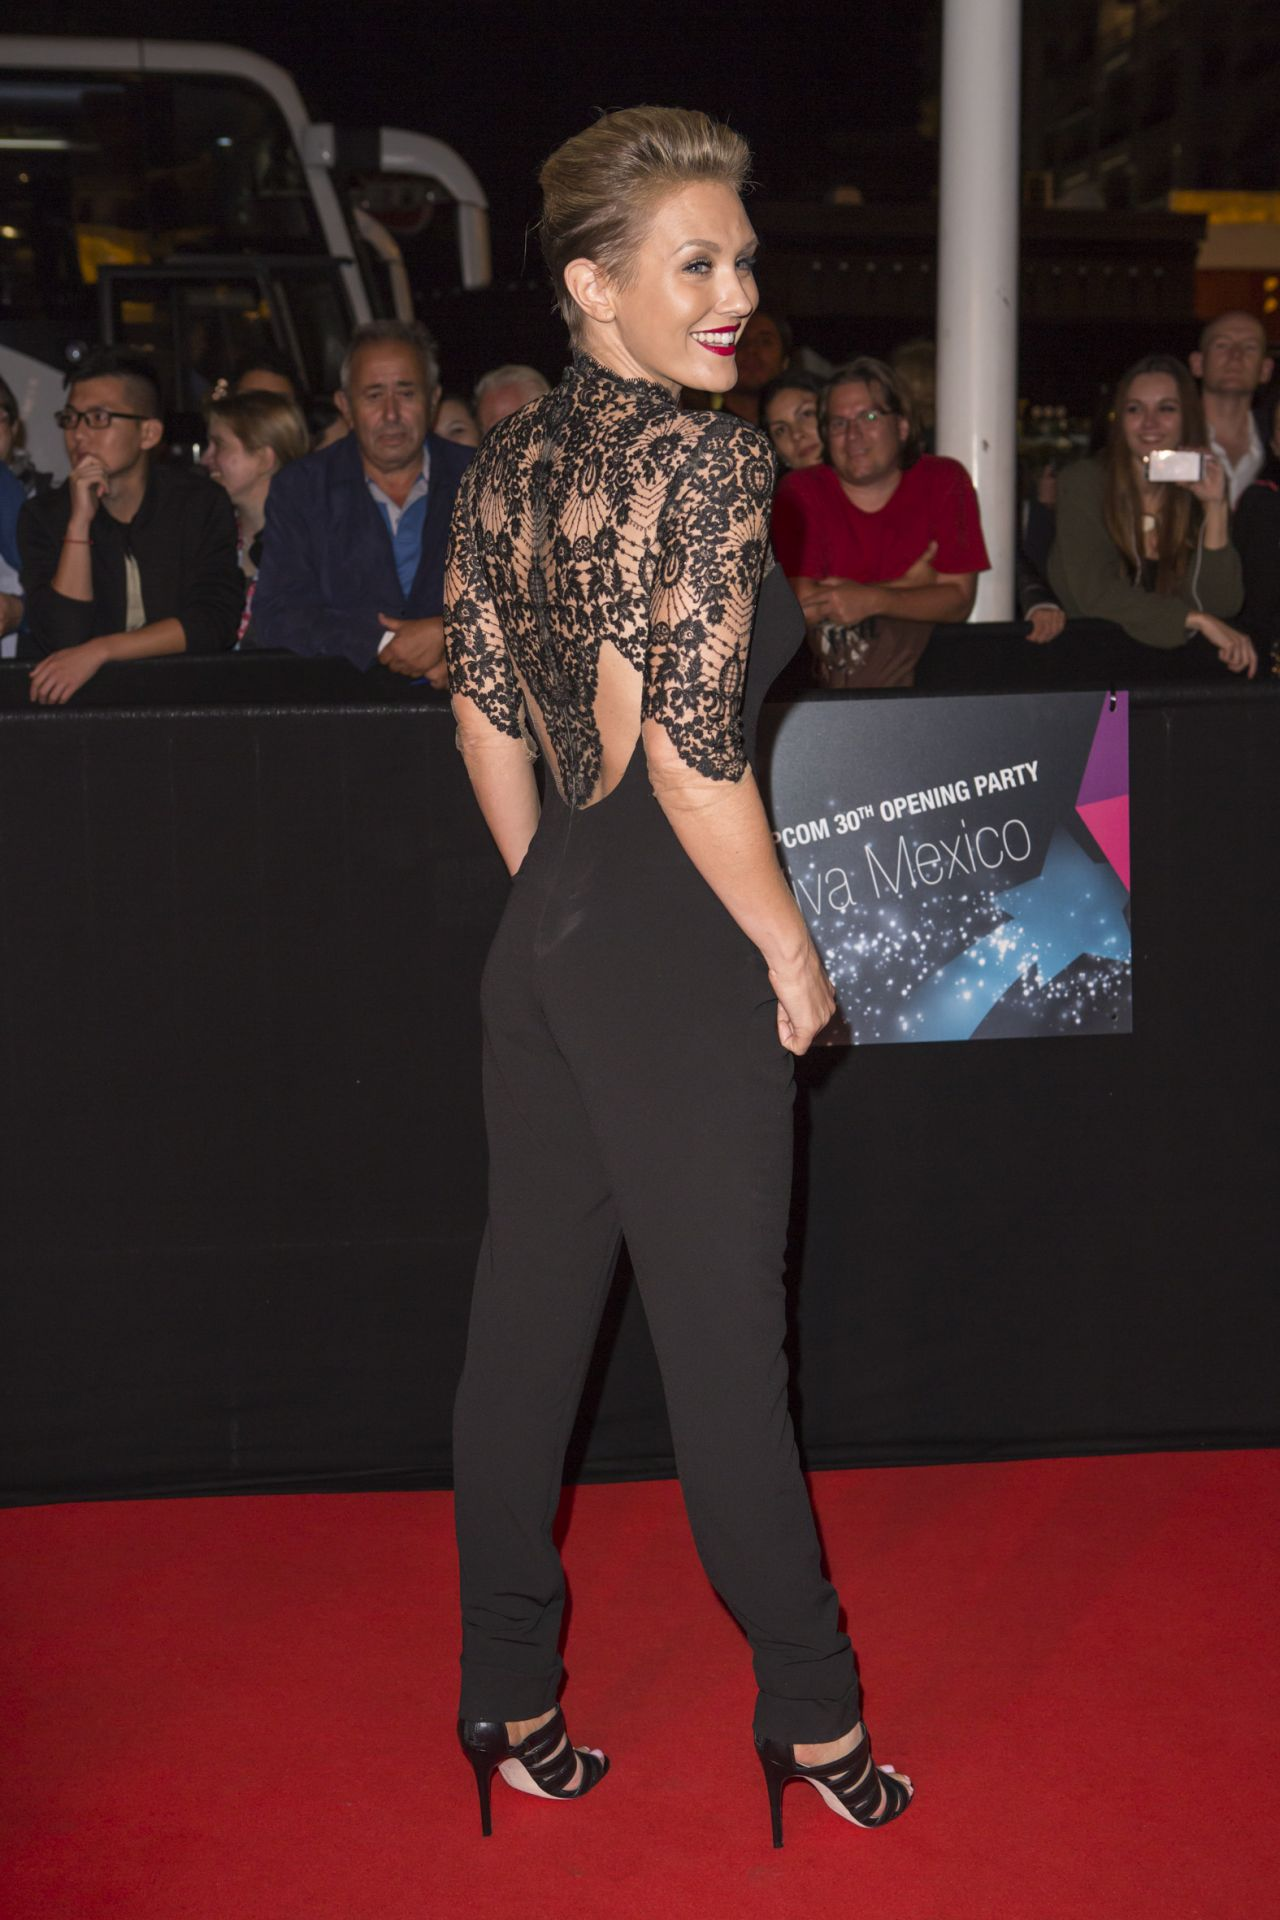 Nicky Whelan - MIPCOM 2014 Opening Party at the Hotel